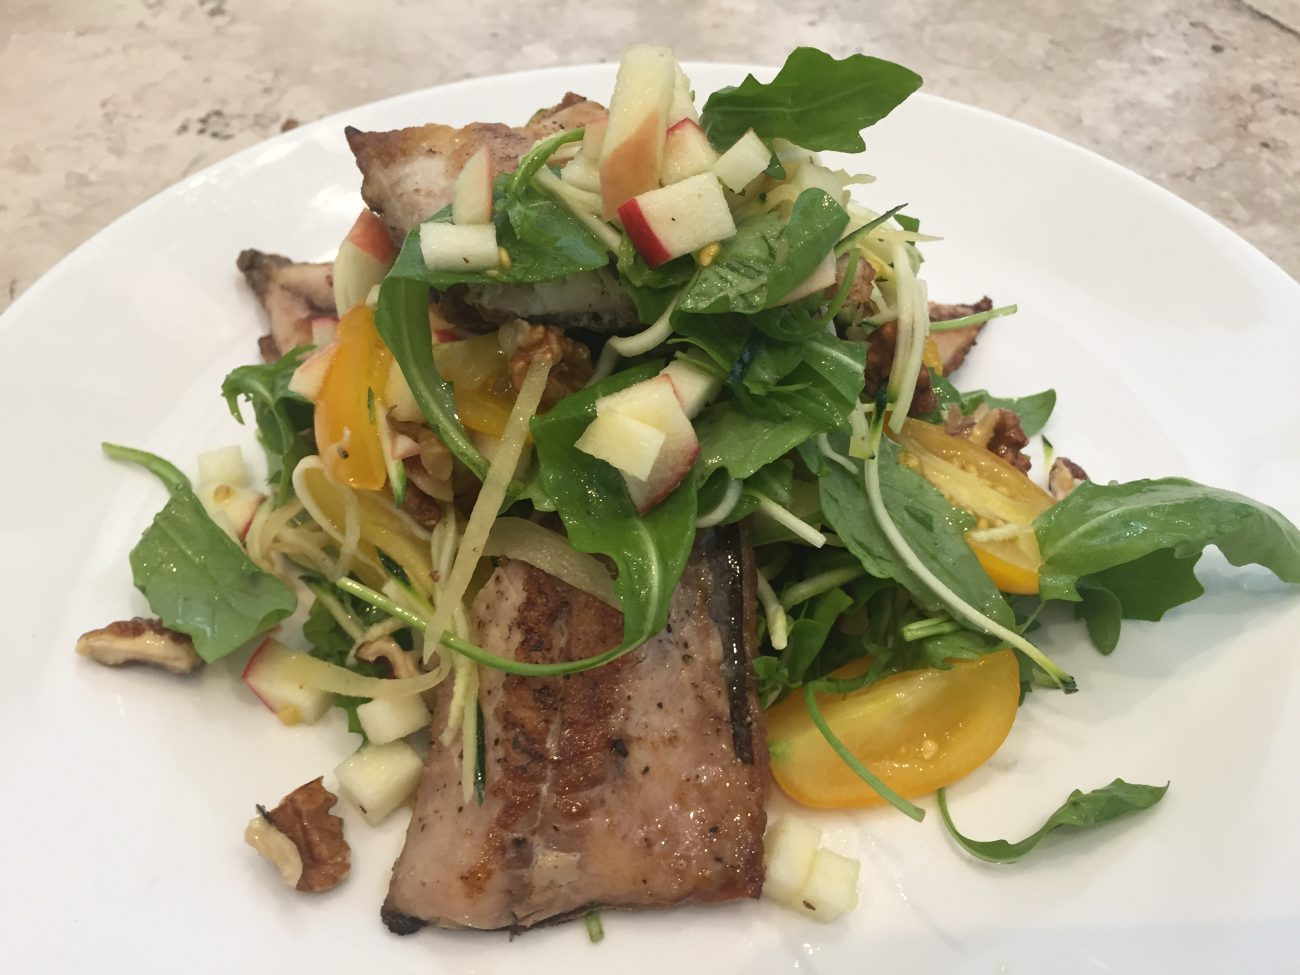 Jersey Mackerel, Ginger Pickle and Apple Salad